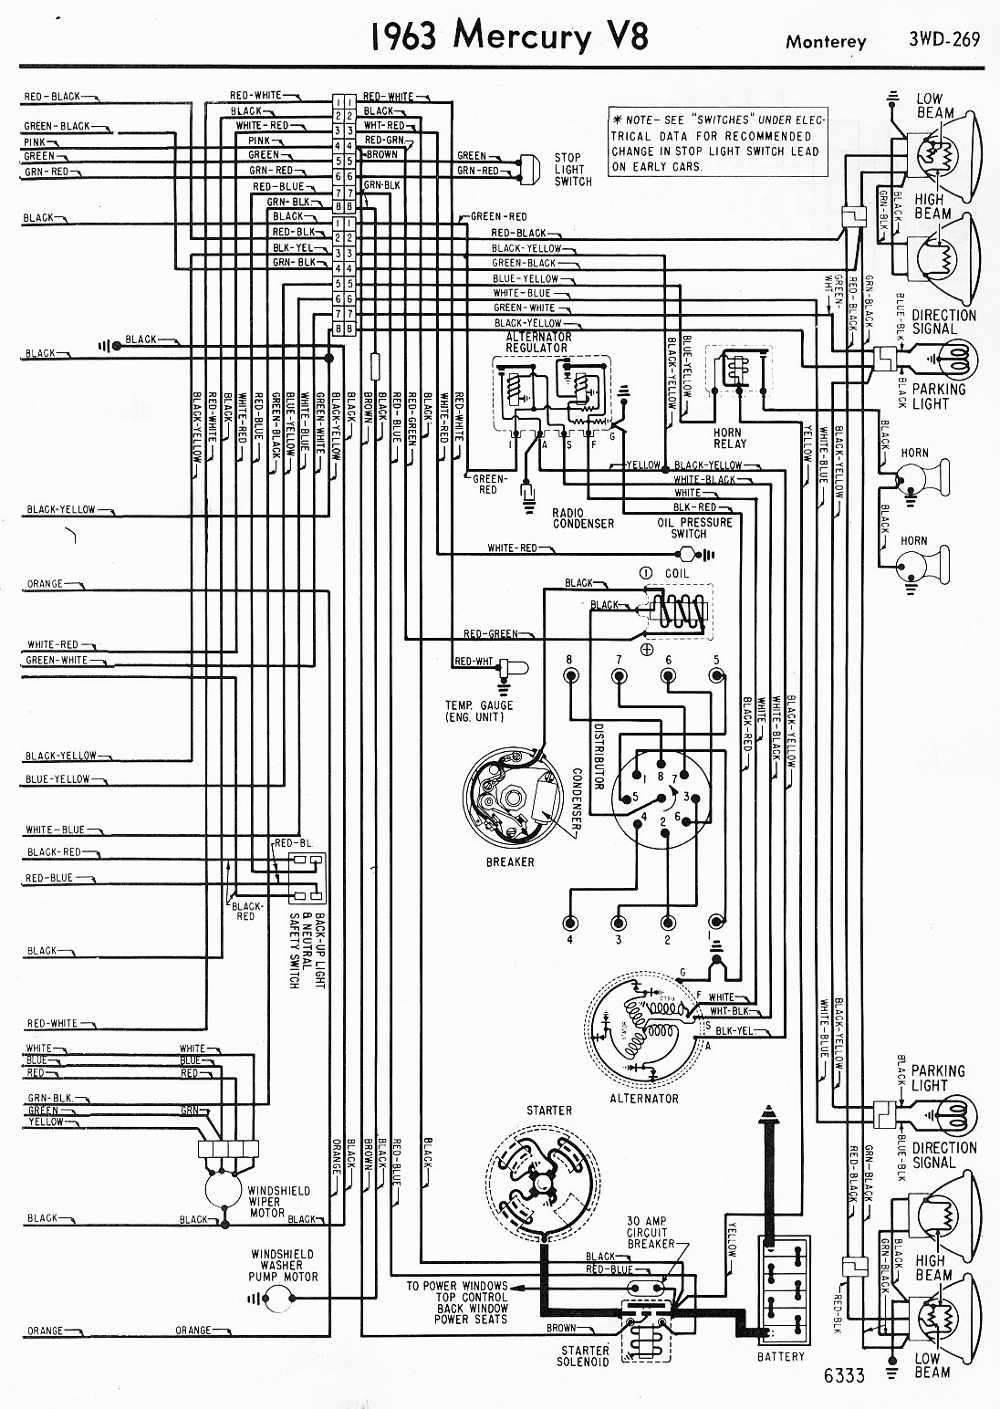 1966 Mercury Wiring Diagram Data Mopar Ignition Schematic Name Dodge